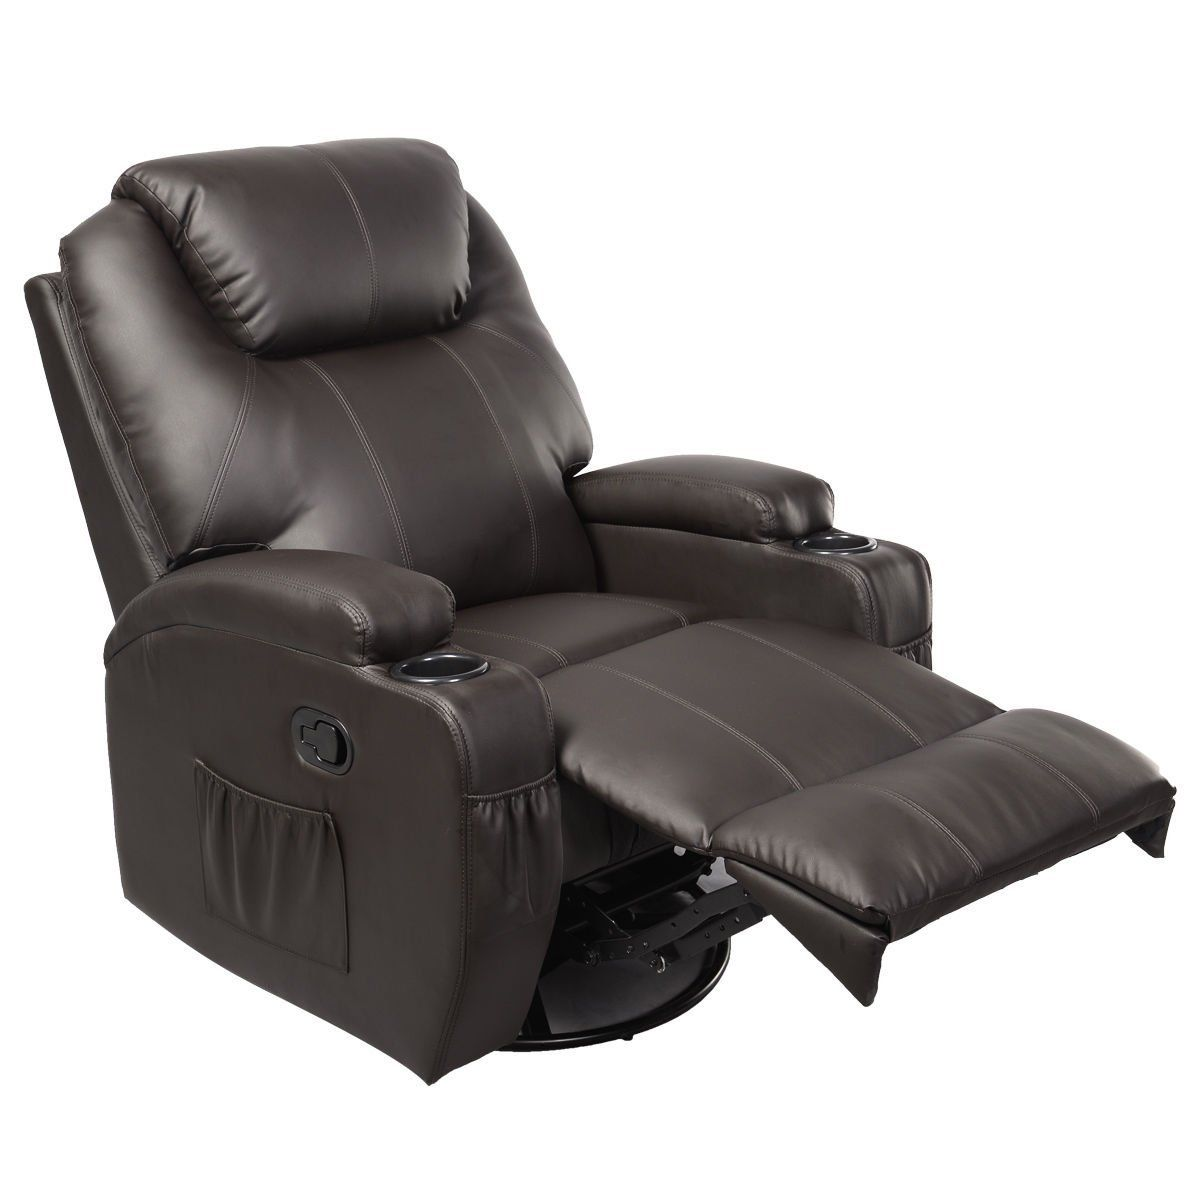 leather control deluxe ergonomic executive chairs massage on heated pin couch pinterest chair lounge sofa sale w by five recliner for stars